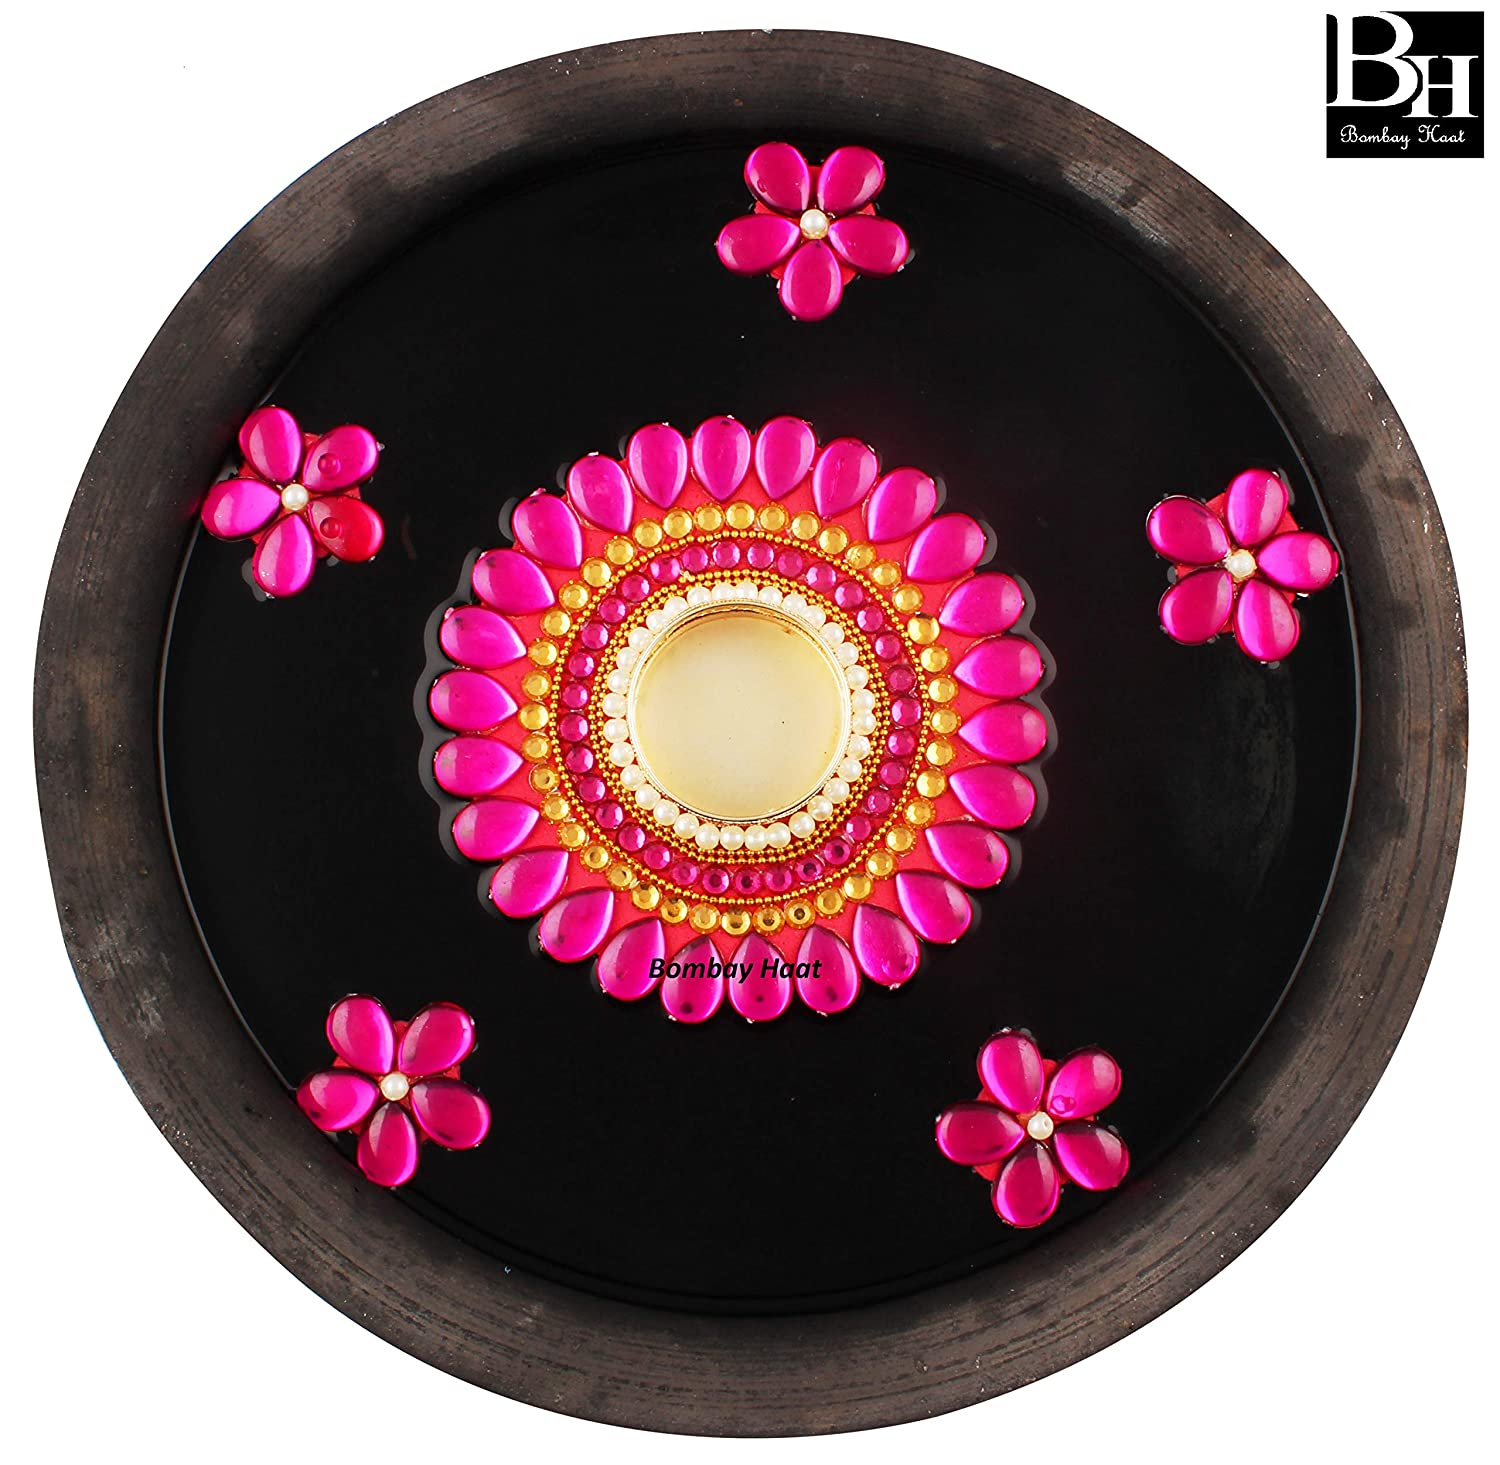 Bombay Haat Handcrafted Floating Tealight Candle Holderfloating Diya With 5 Floating Flowers For Home Decorchristmas Decorationchristmas Gift Hot